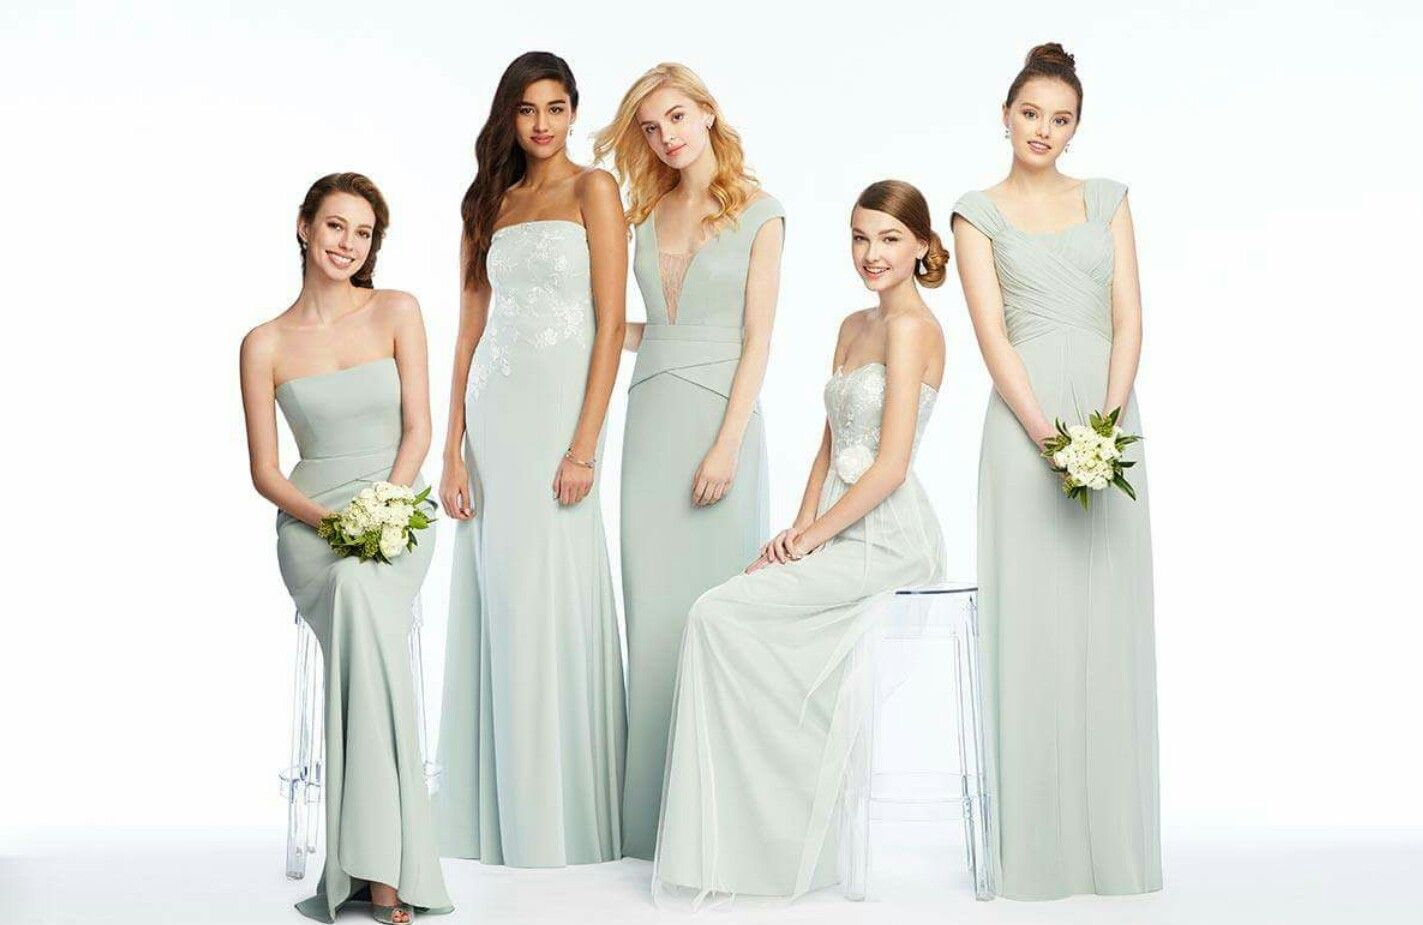 Bernice fashions are stockists of dessy group of bridesmaid bernice fashions are stockists of dessy group of bridesmaid formal and graduation gowns ombrellifo Choice Image